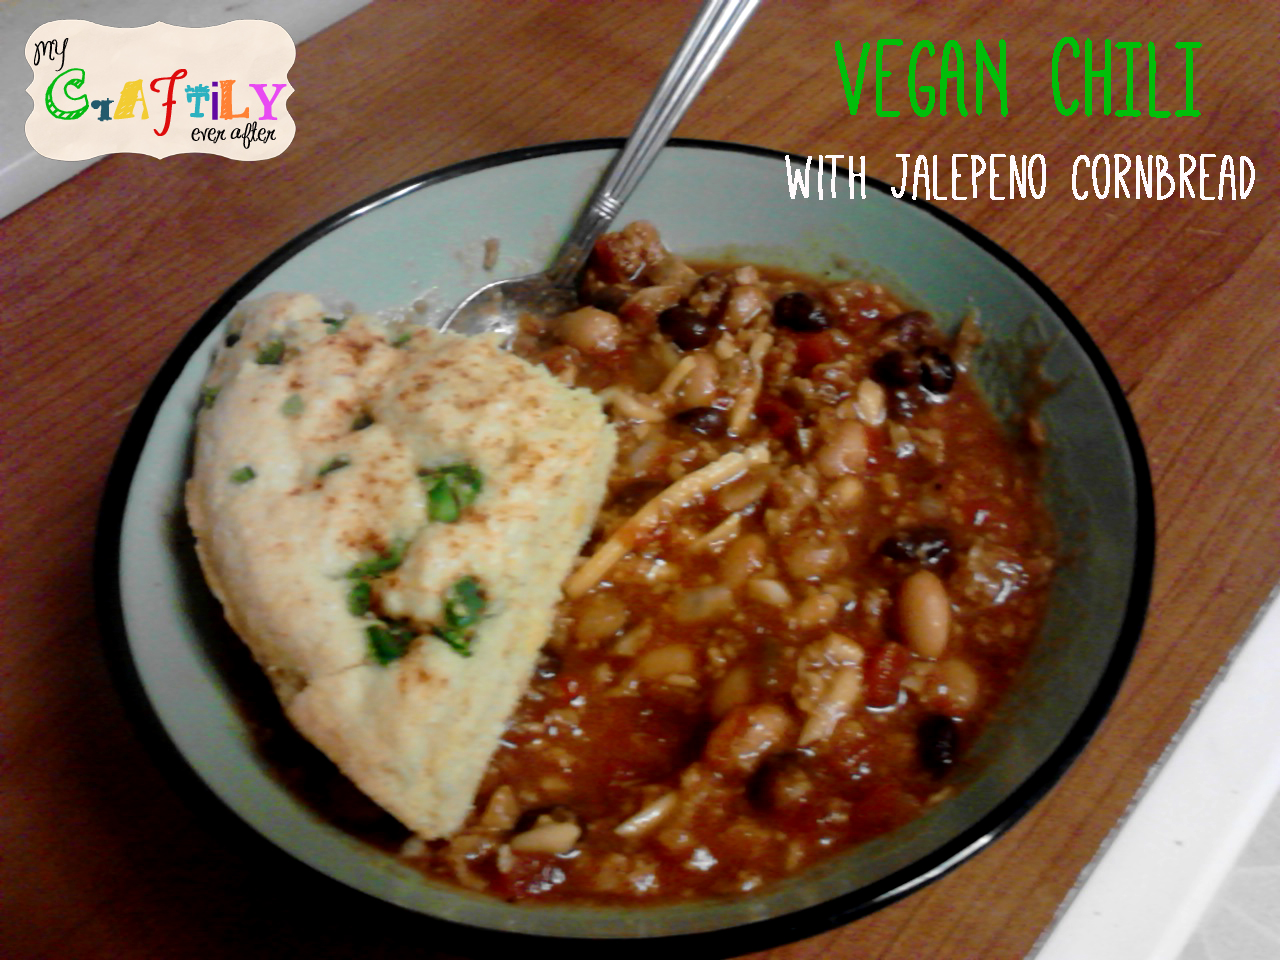 vegan chili with jalenpeno cornbread